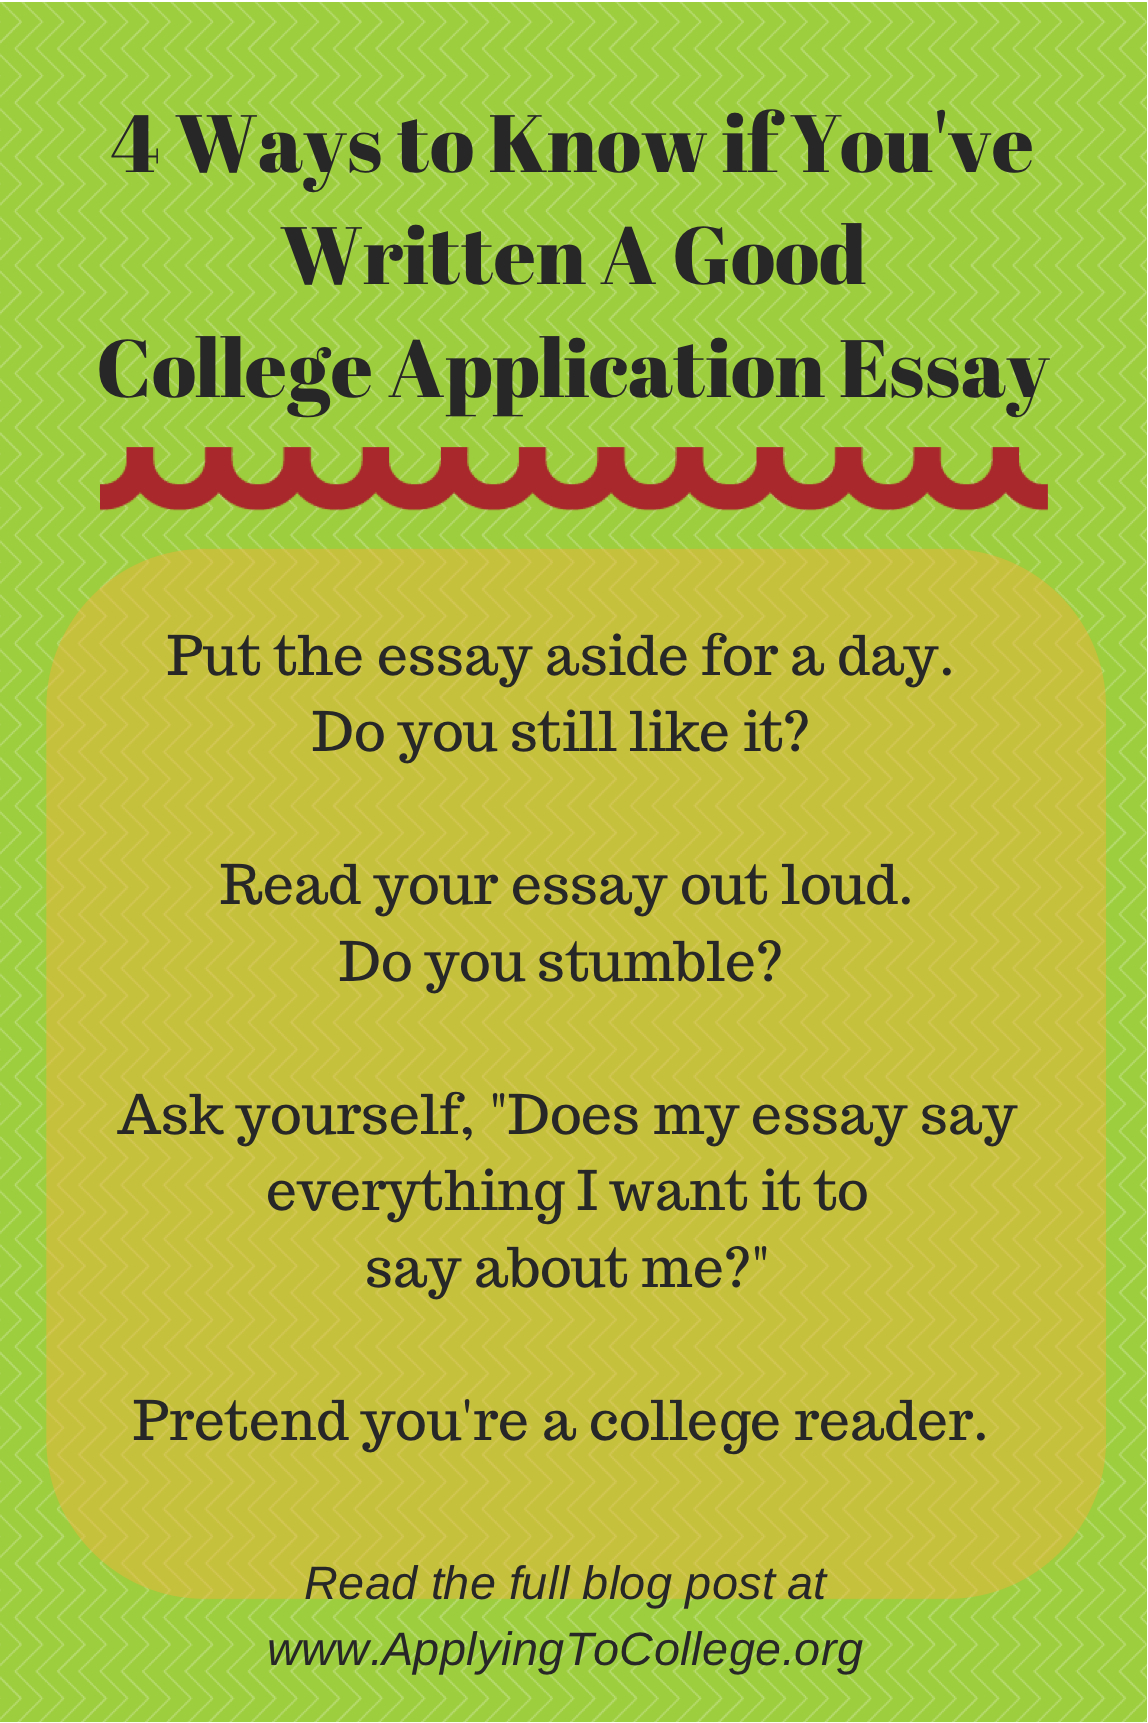 Please help!!! I need a topic for my college essay!!!?